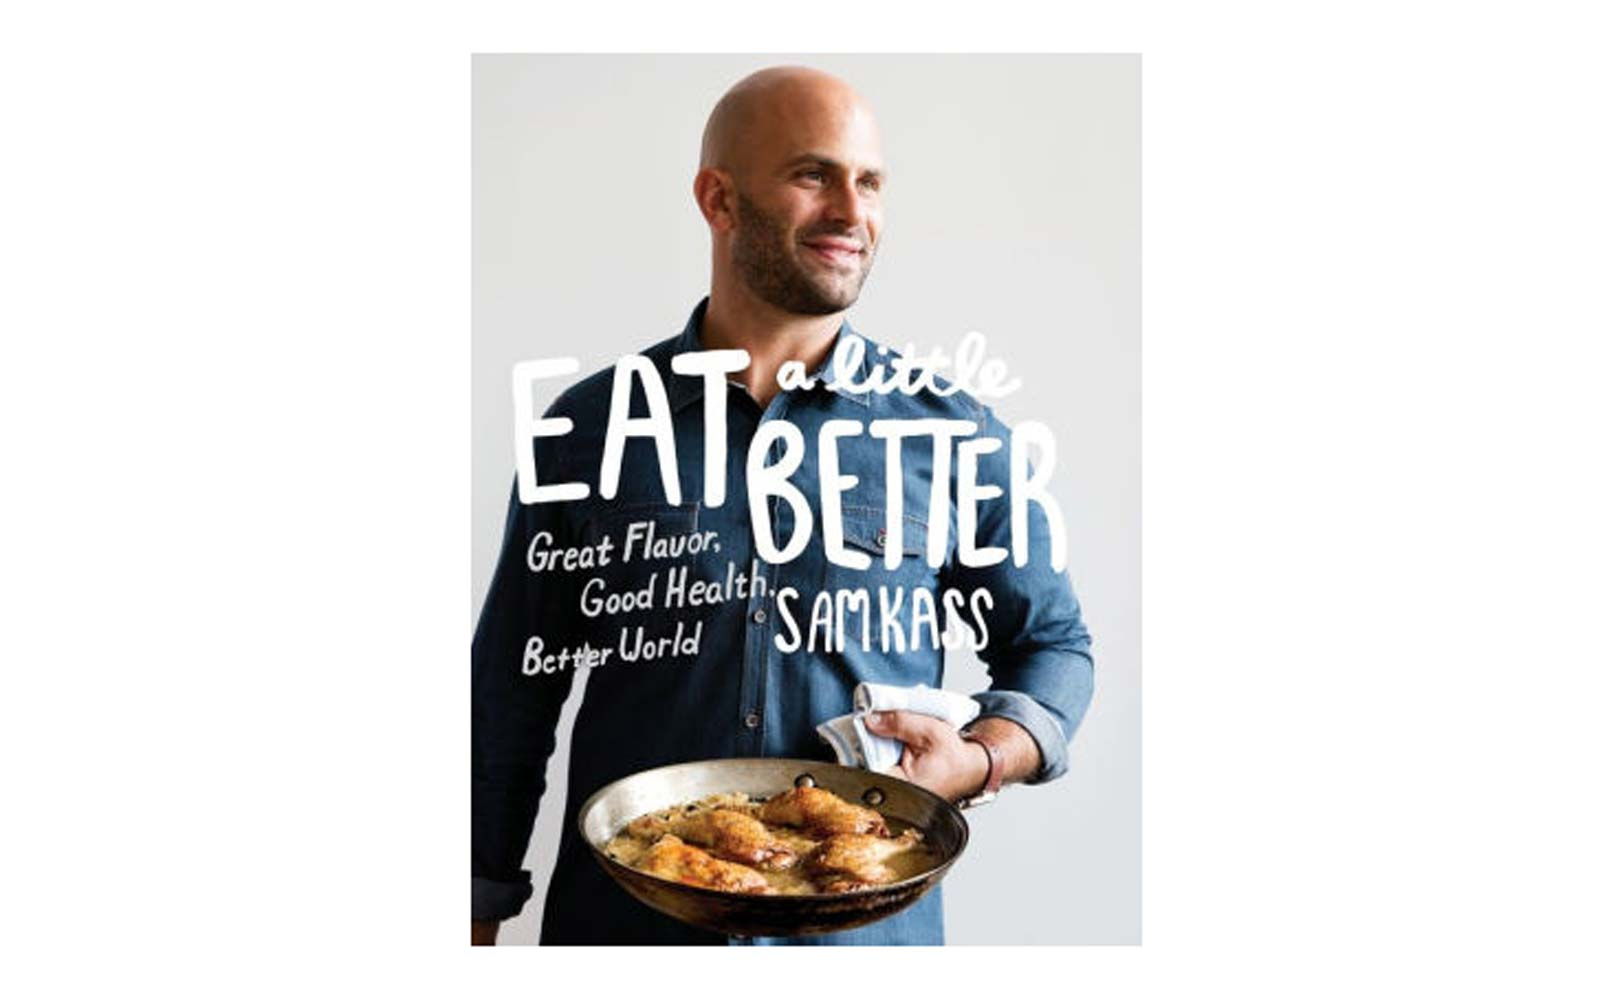 'Eat a Little Better: Great Flavor, Good Health, Better World' by Sam Kass